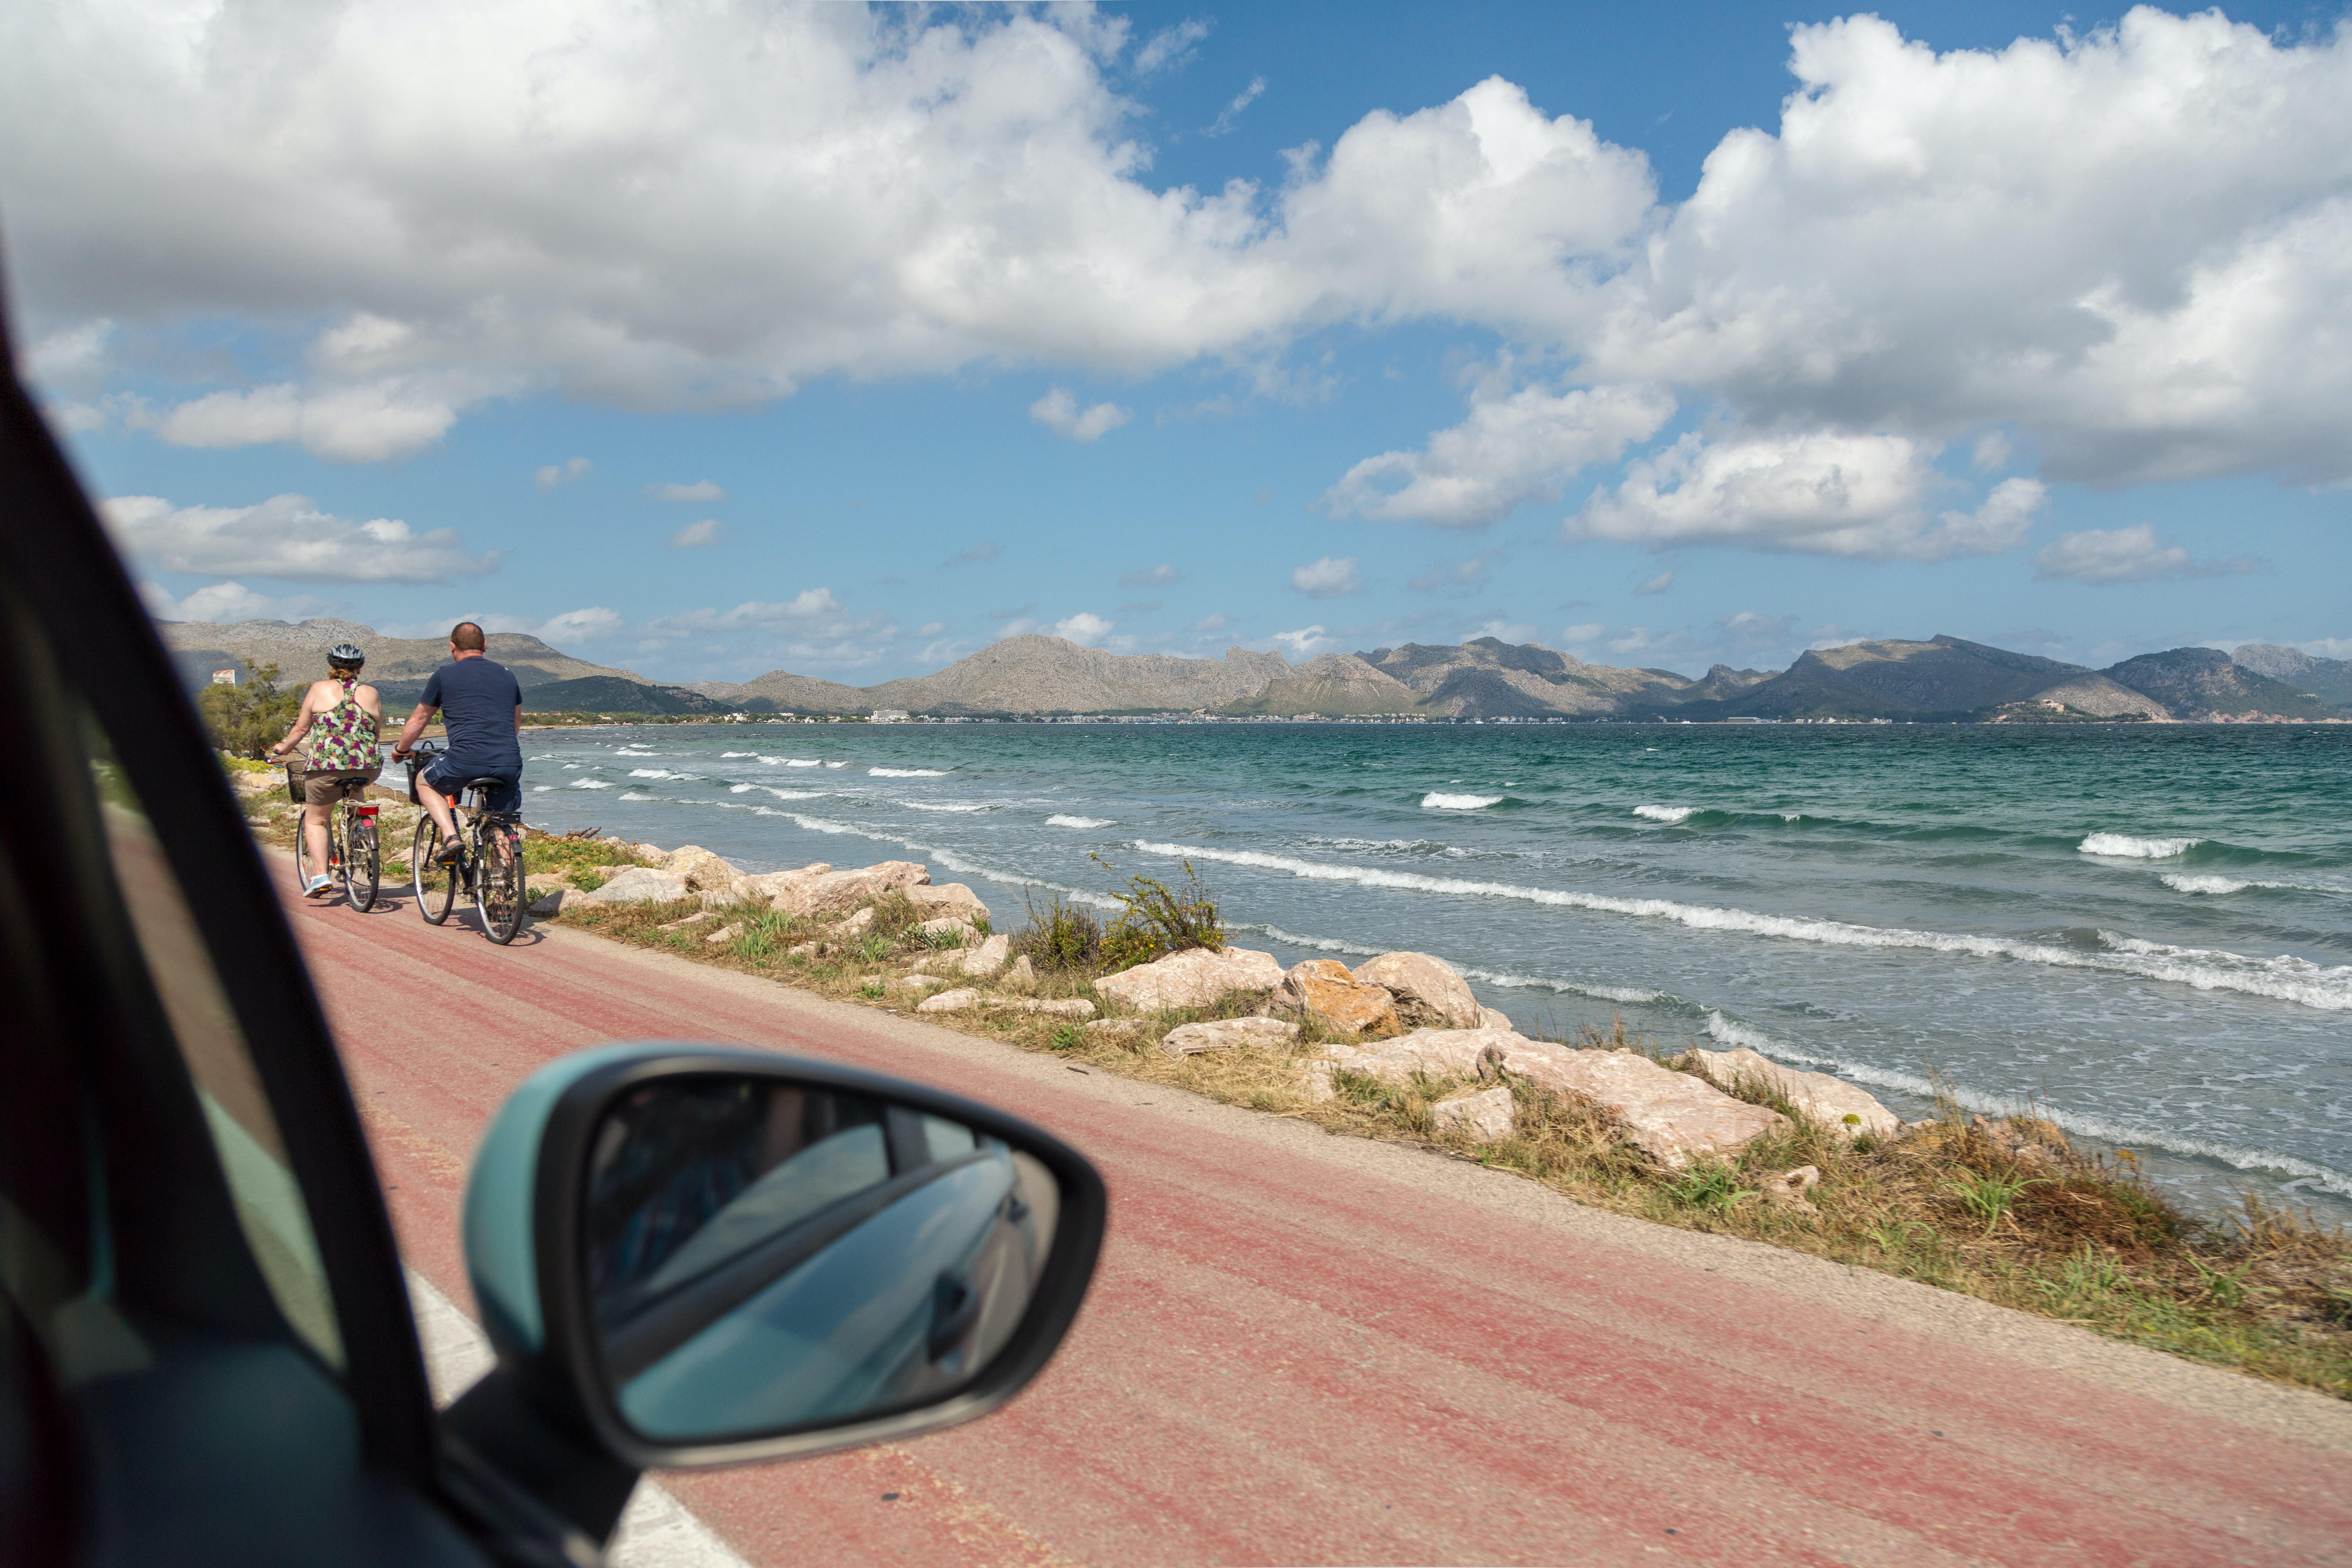 Wing mirror of a car looking out on to the sea with two cyclists riding past